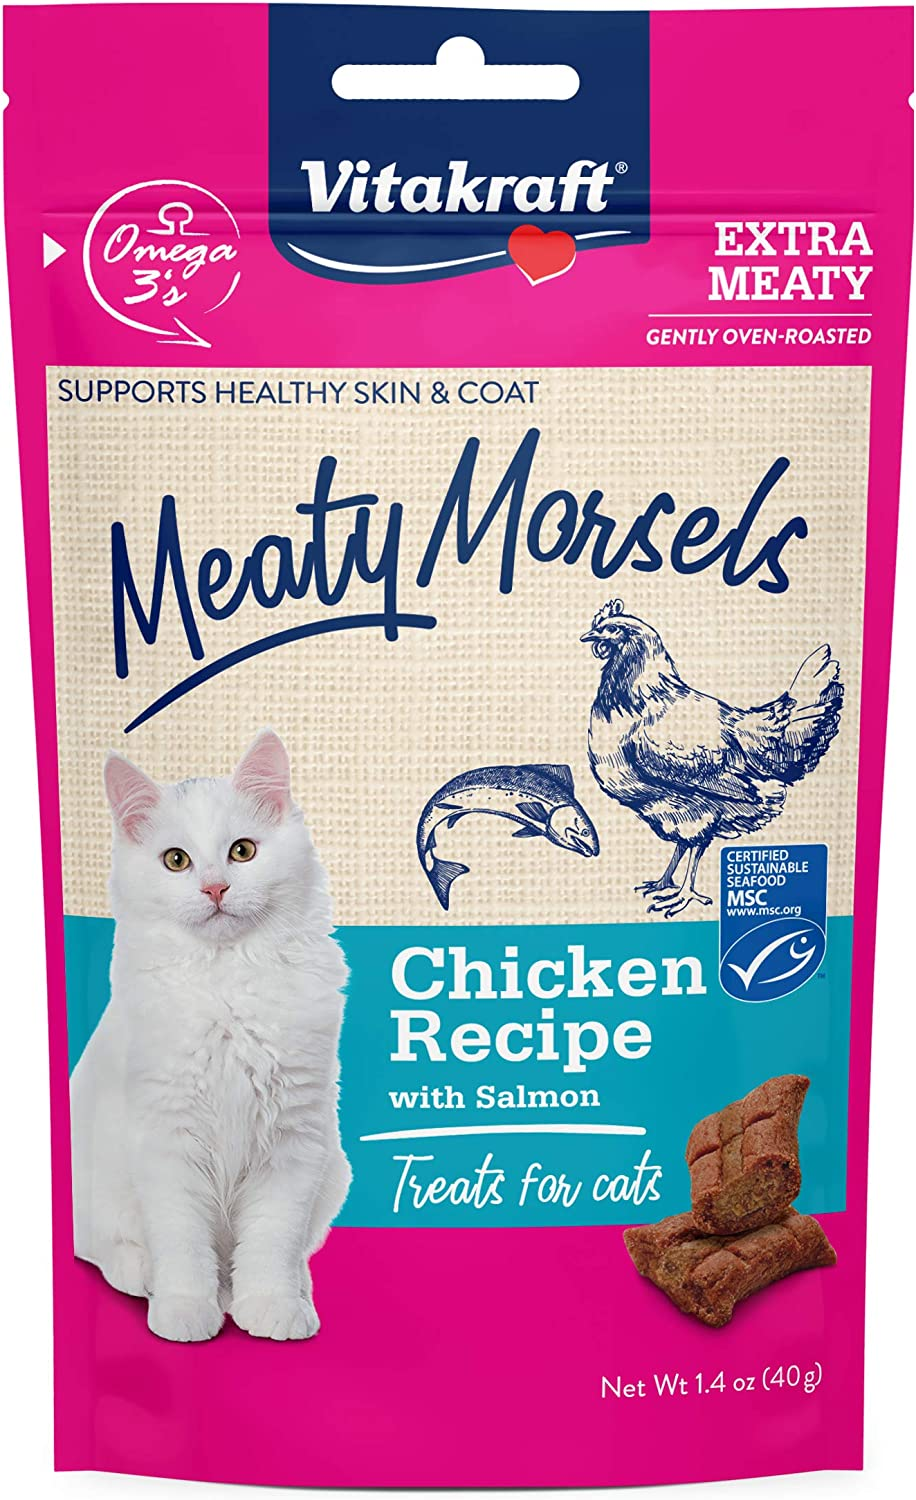 Vitakraft Meaty Morsels Chicken Recipe Treats for Cats, Extra Meaty, Gently Oven-Roasted